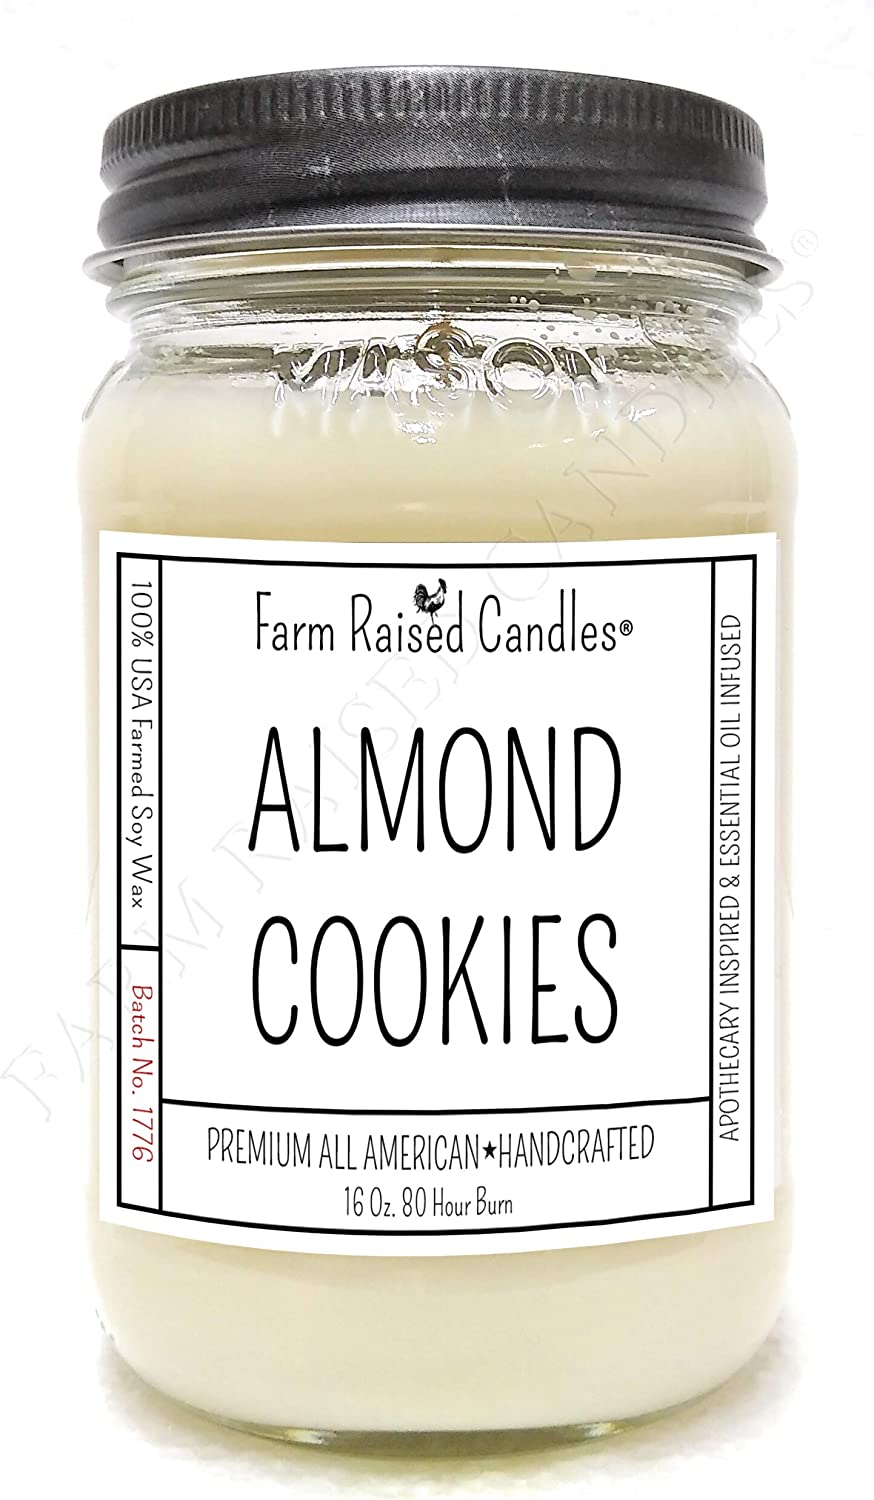 All American Handmade Mason Jar Candle. 16 Ounces Over 80 Hour Burn. 100% Natural Soy Wax Candle. (Almond Cookies)